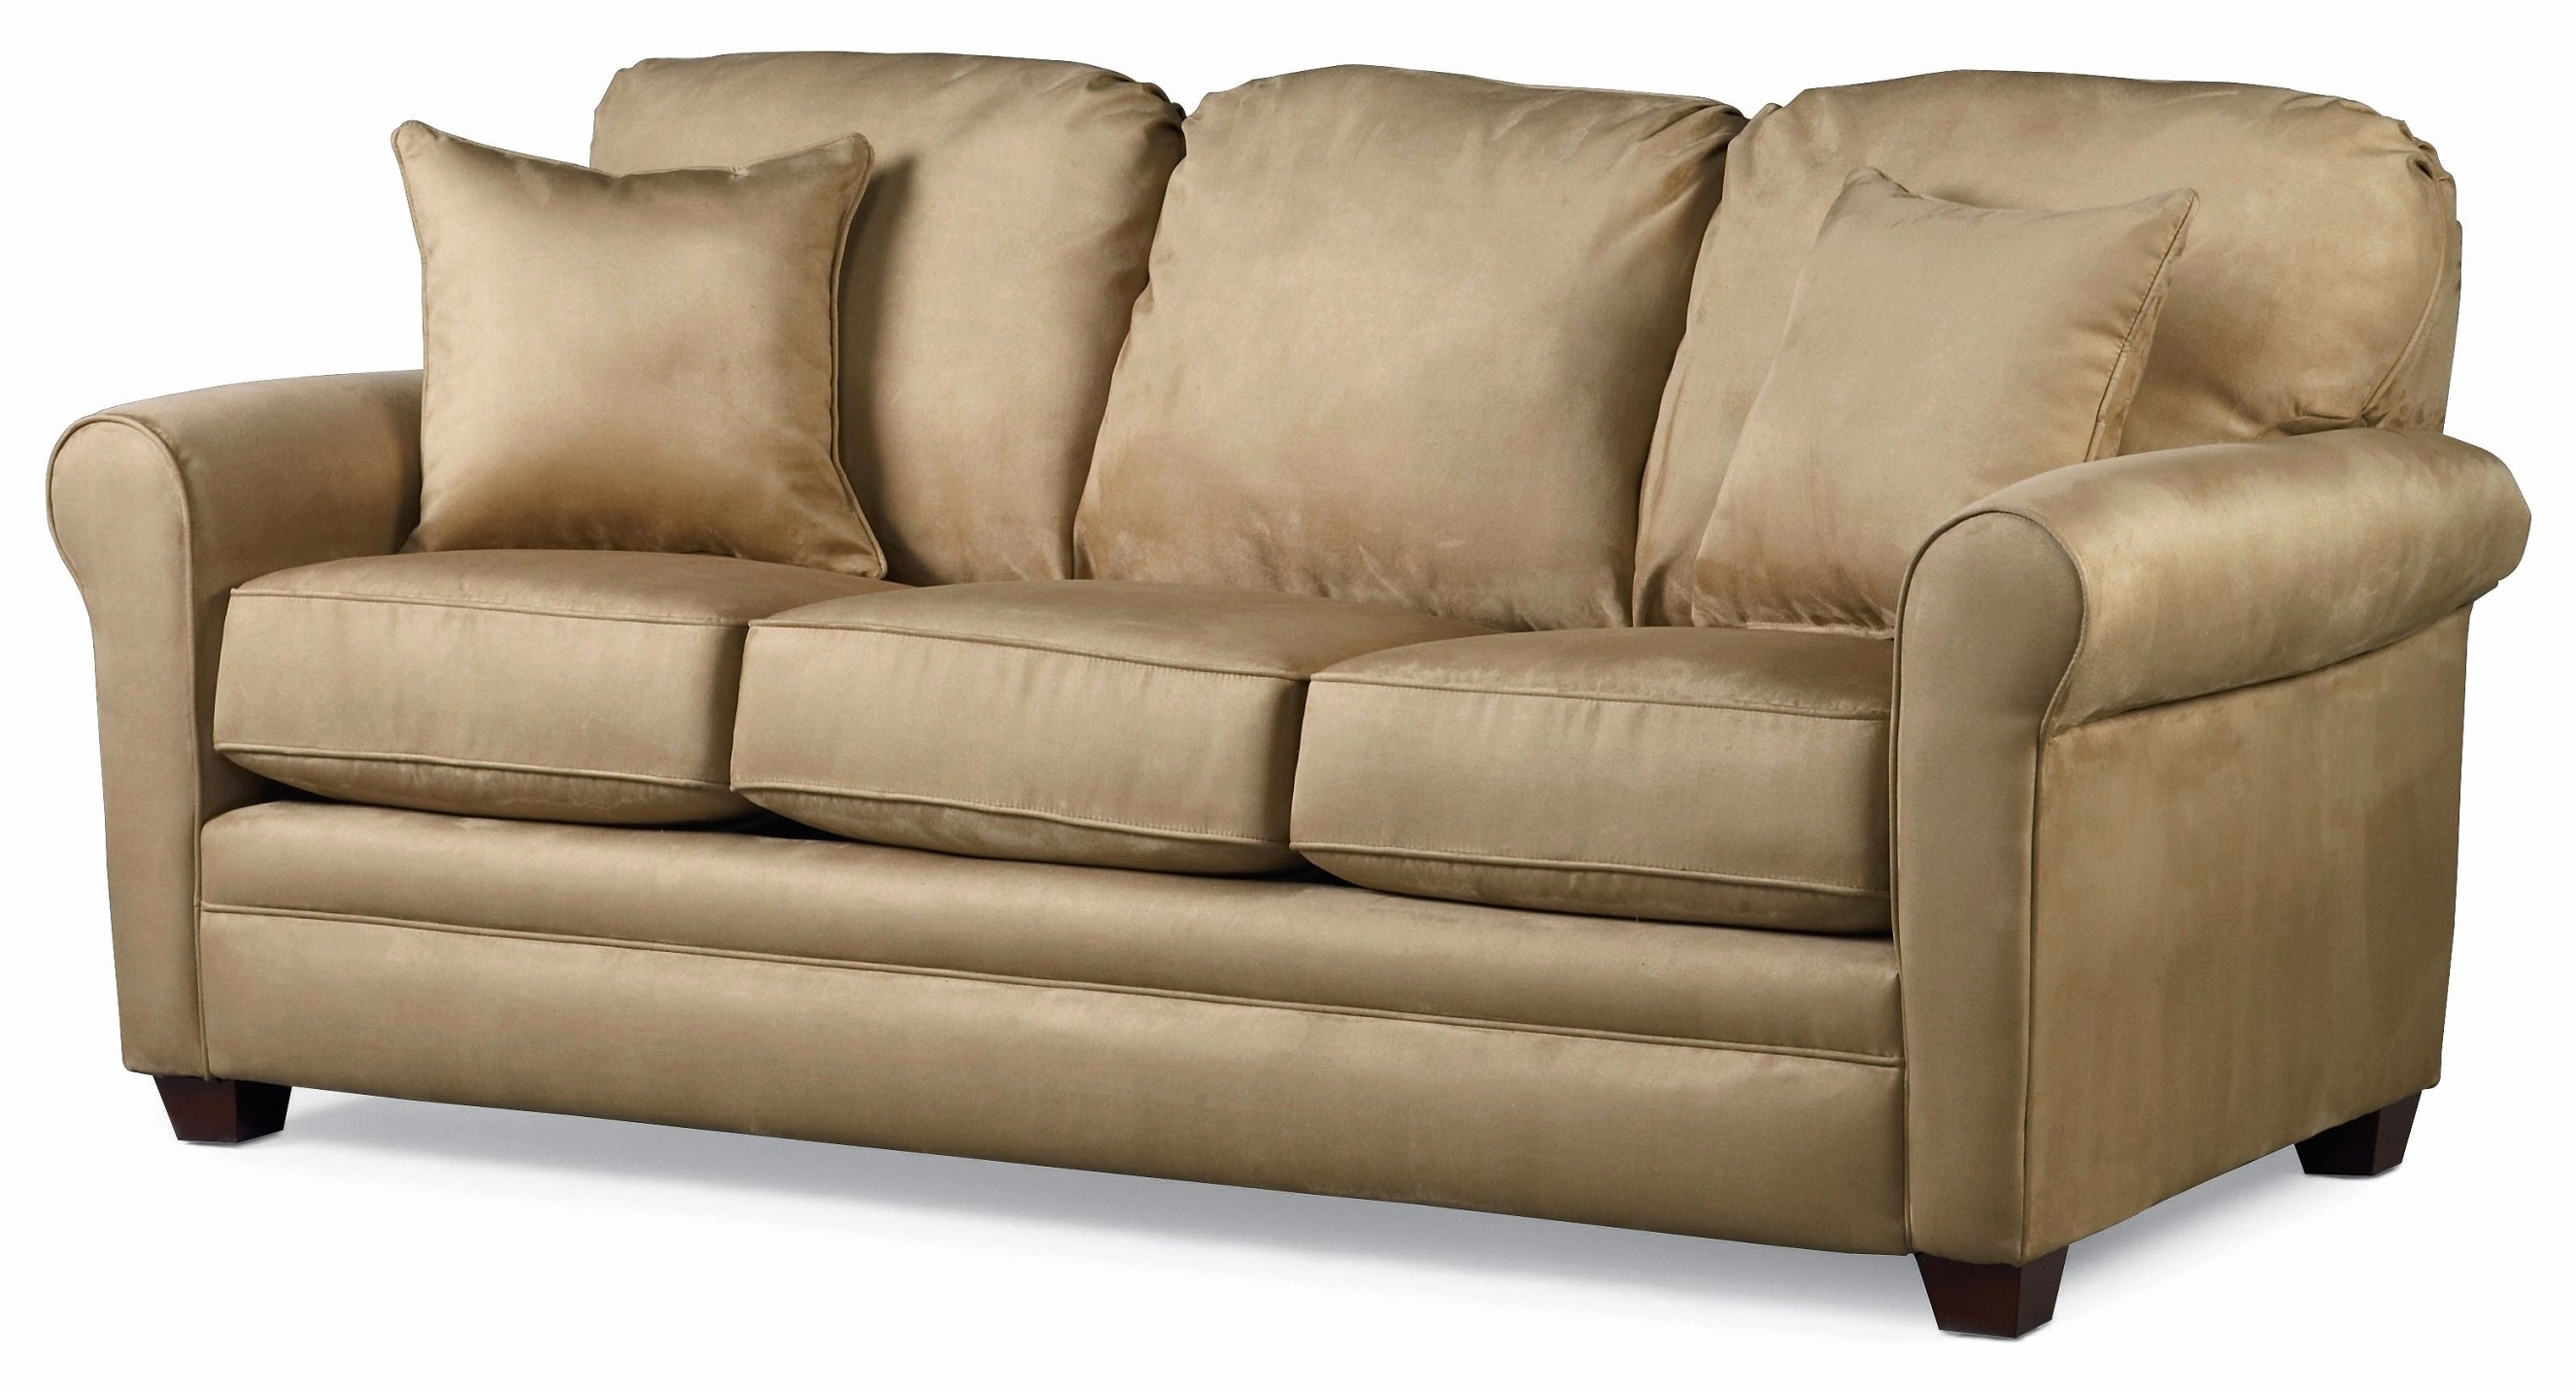 Widely Used Sofa : Full Size Leather Sleeper Sofa Luxury Sofas Fabulous Queen In Queen Size Sofas (View 18 of 20)